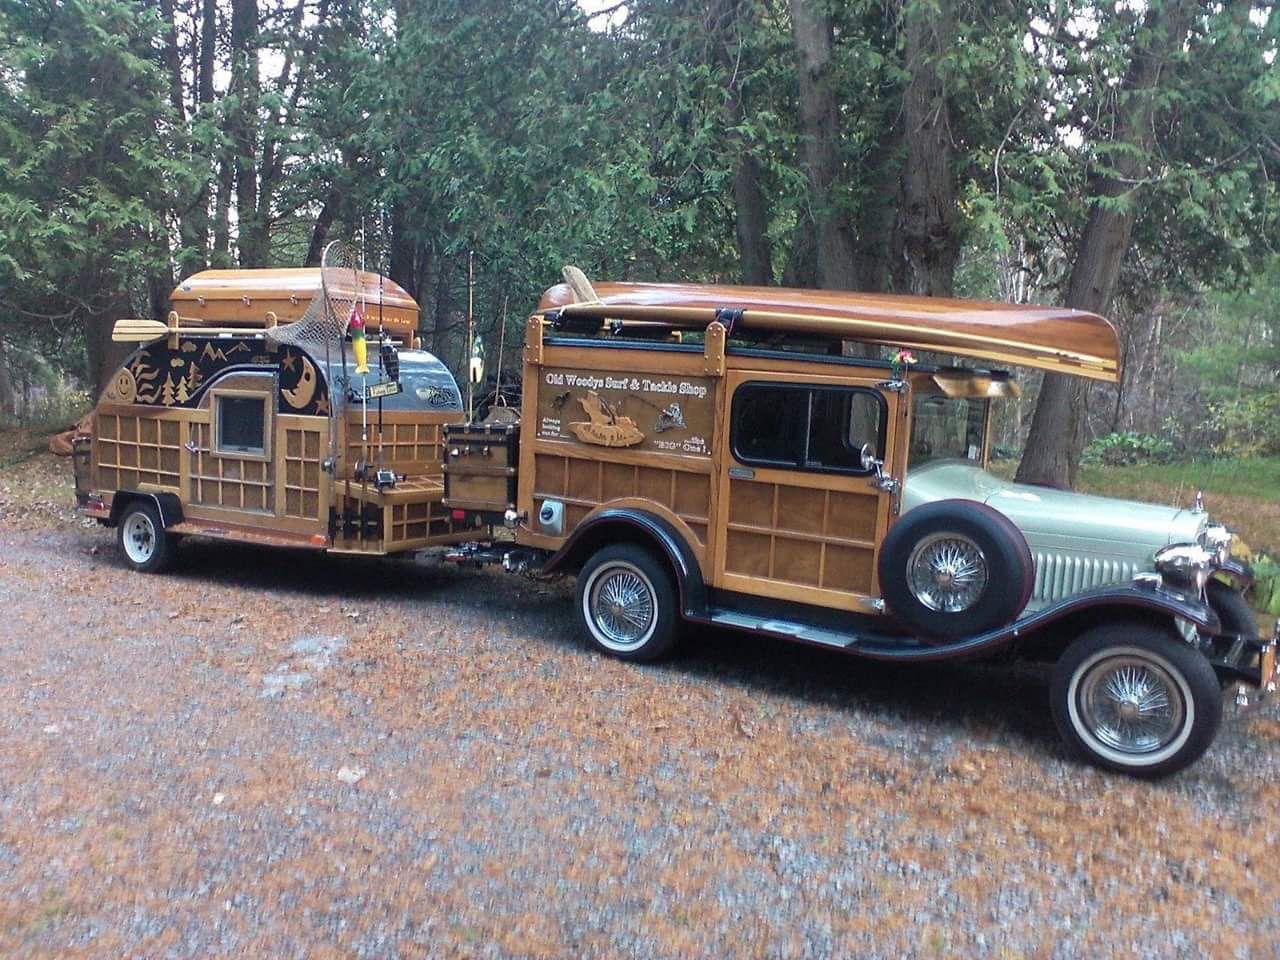 Pin by Jerri Humphrey on Vintage Trailers | Pinterest | Camping ...